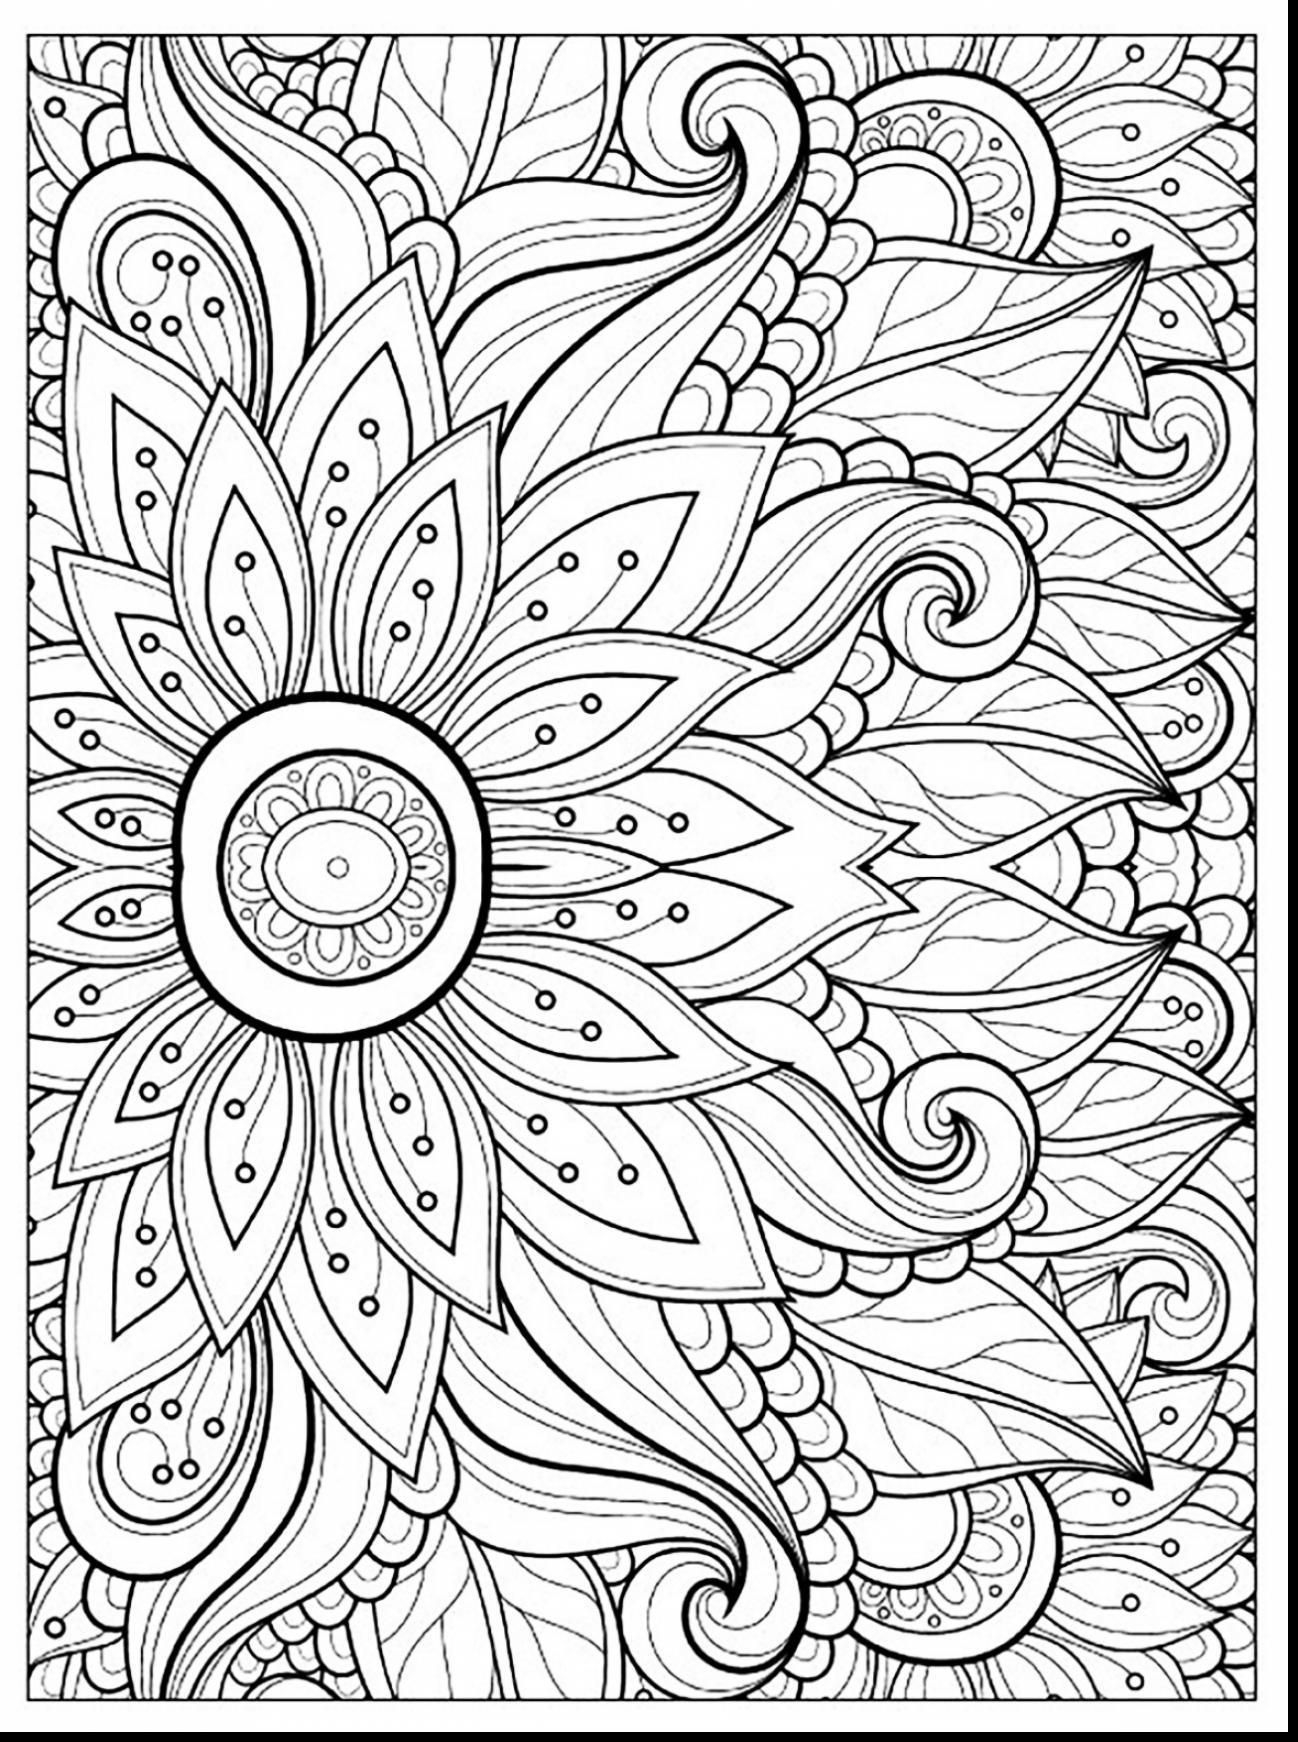 1298x1742 New Intricate Design Coloring Pages Free Coloring Pages Download